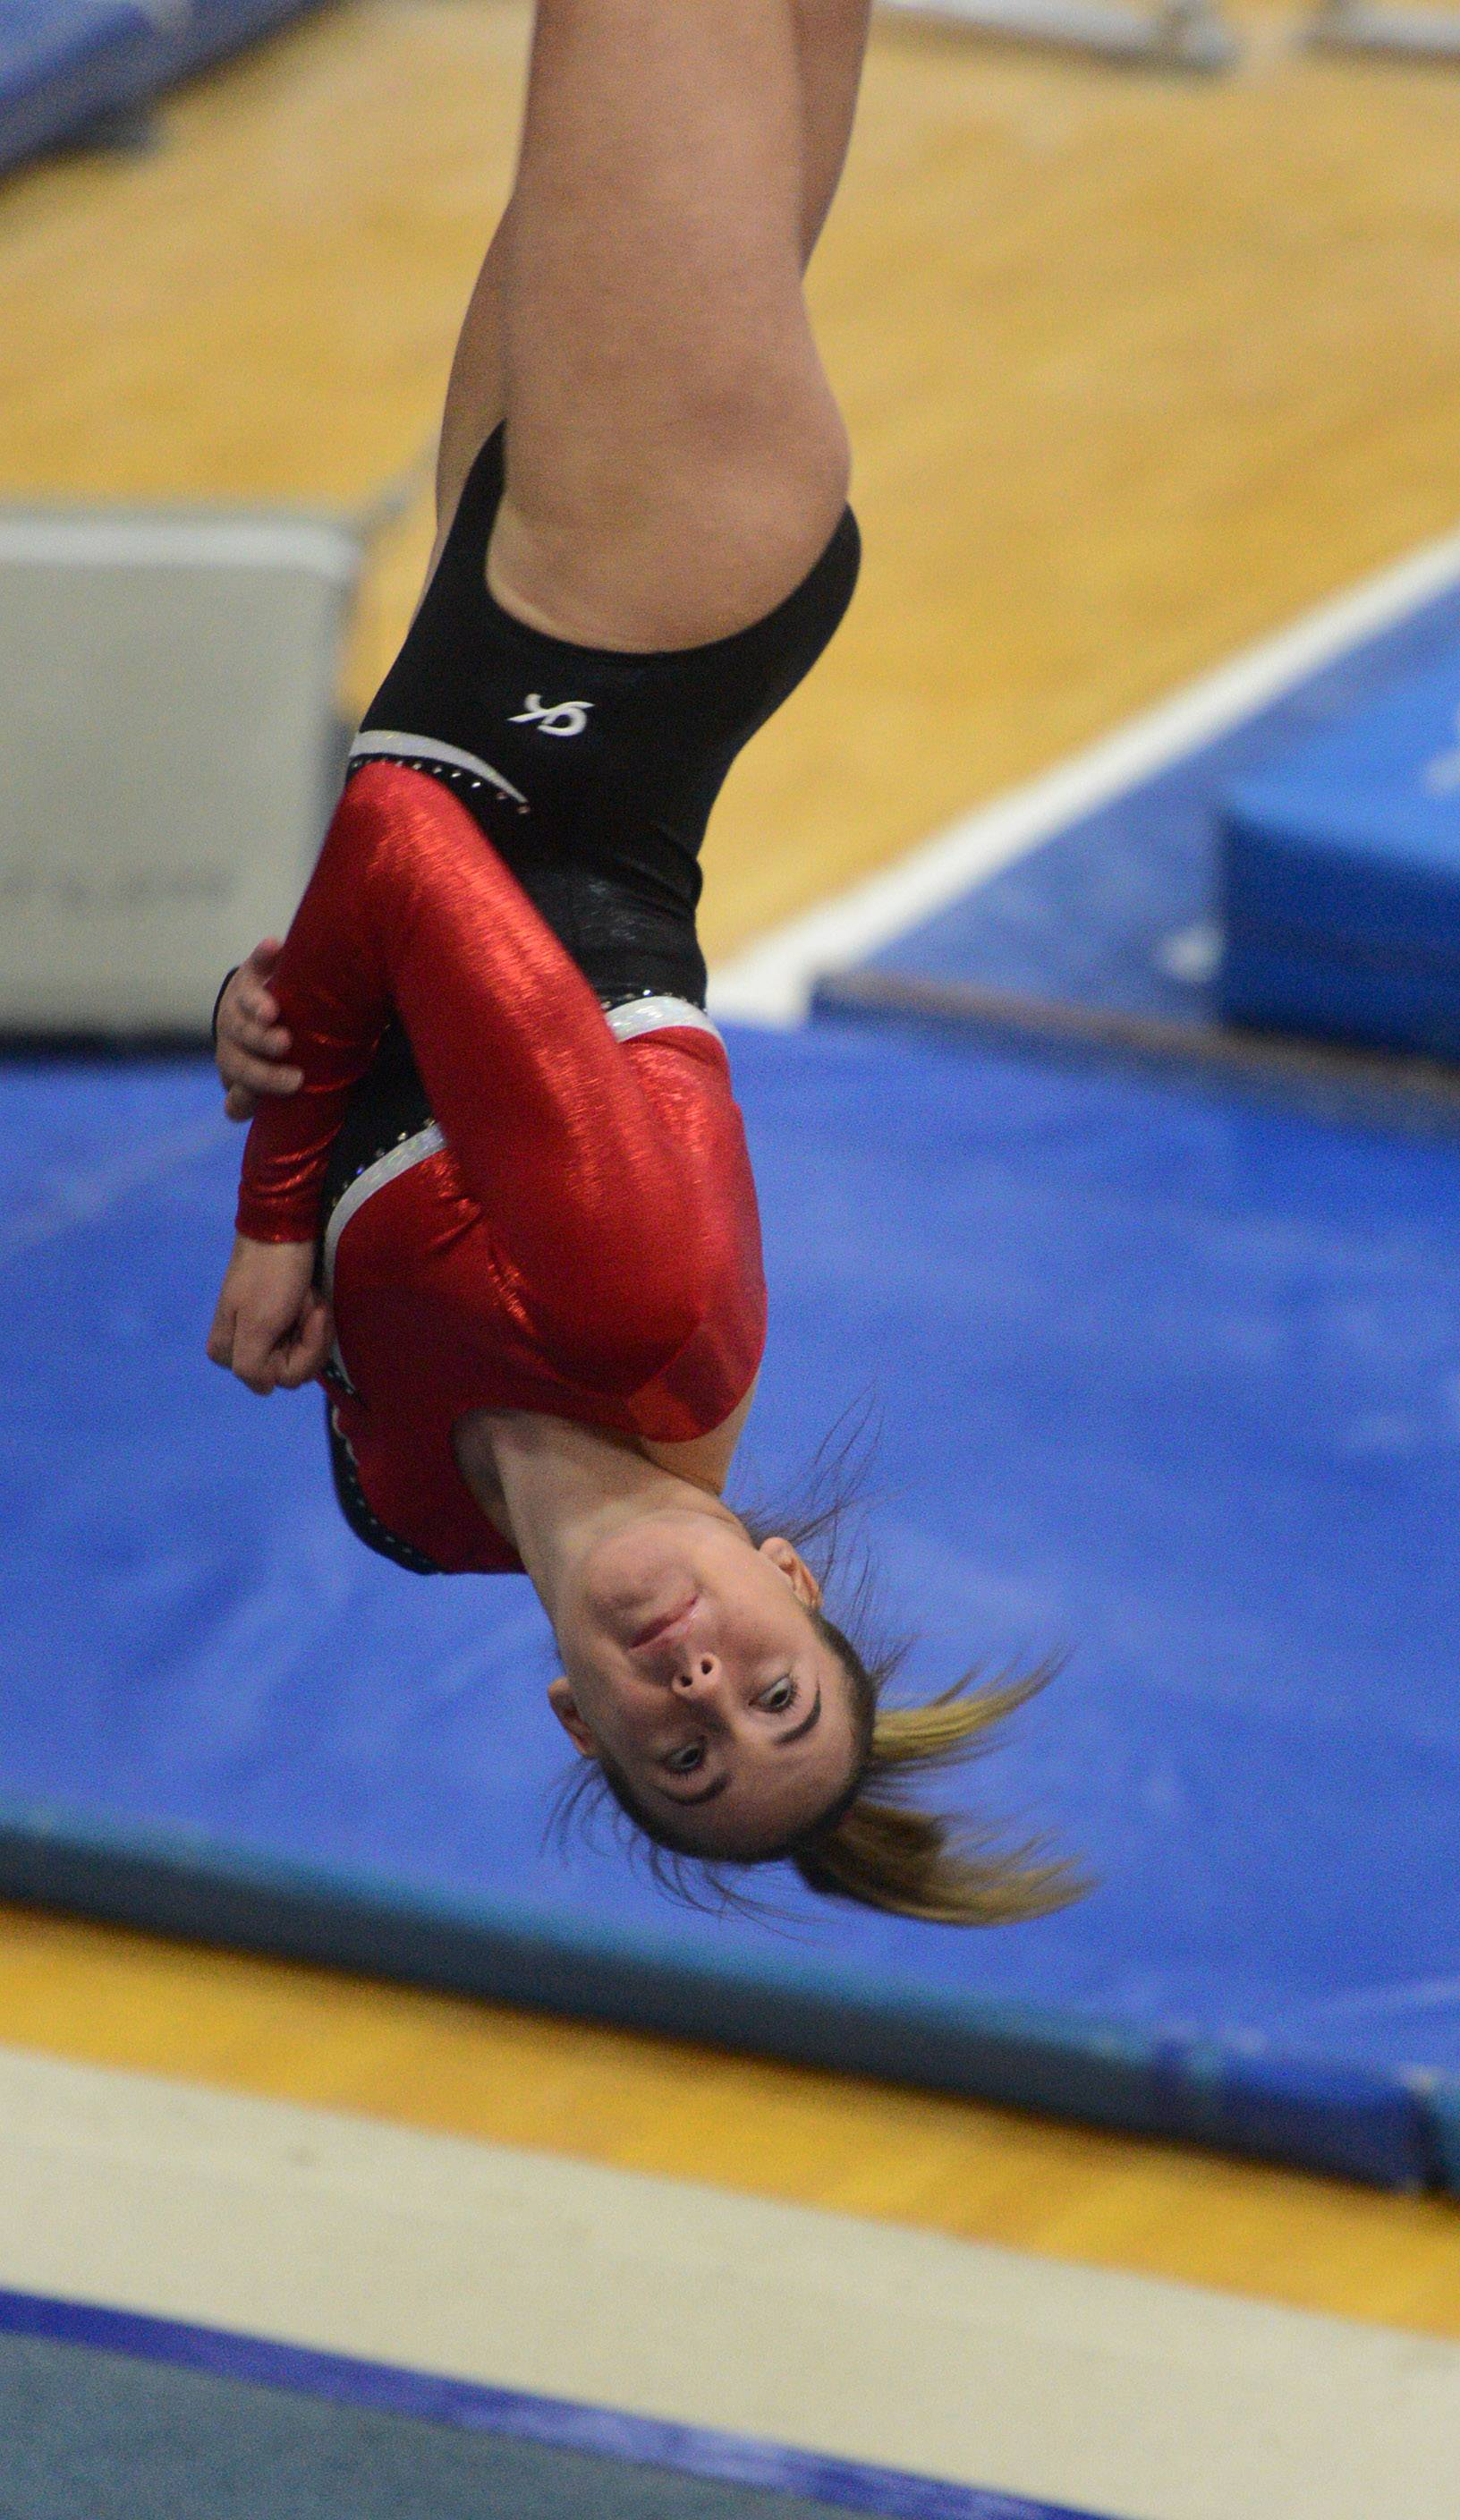 Barrington's Brooke Husby competes on the floor exercise during Wednesday's meet at Palatine.